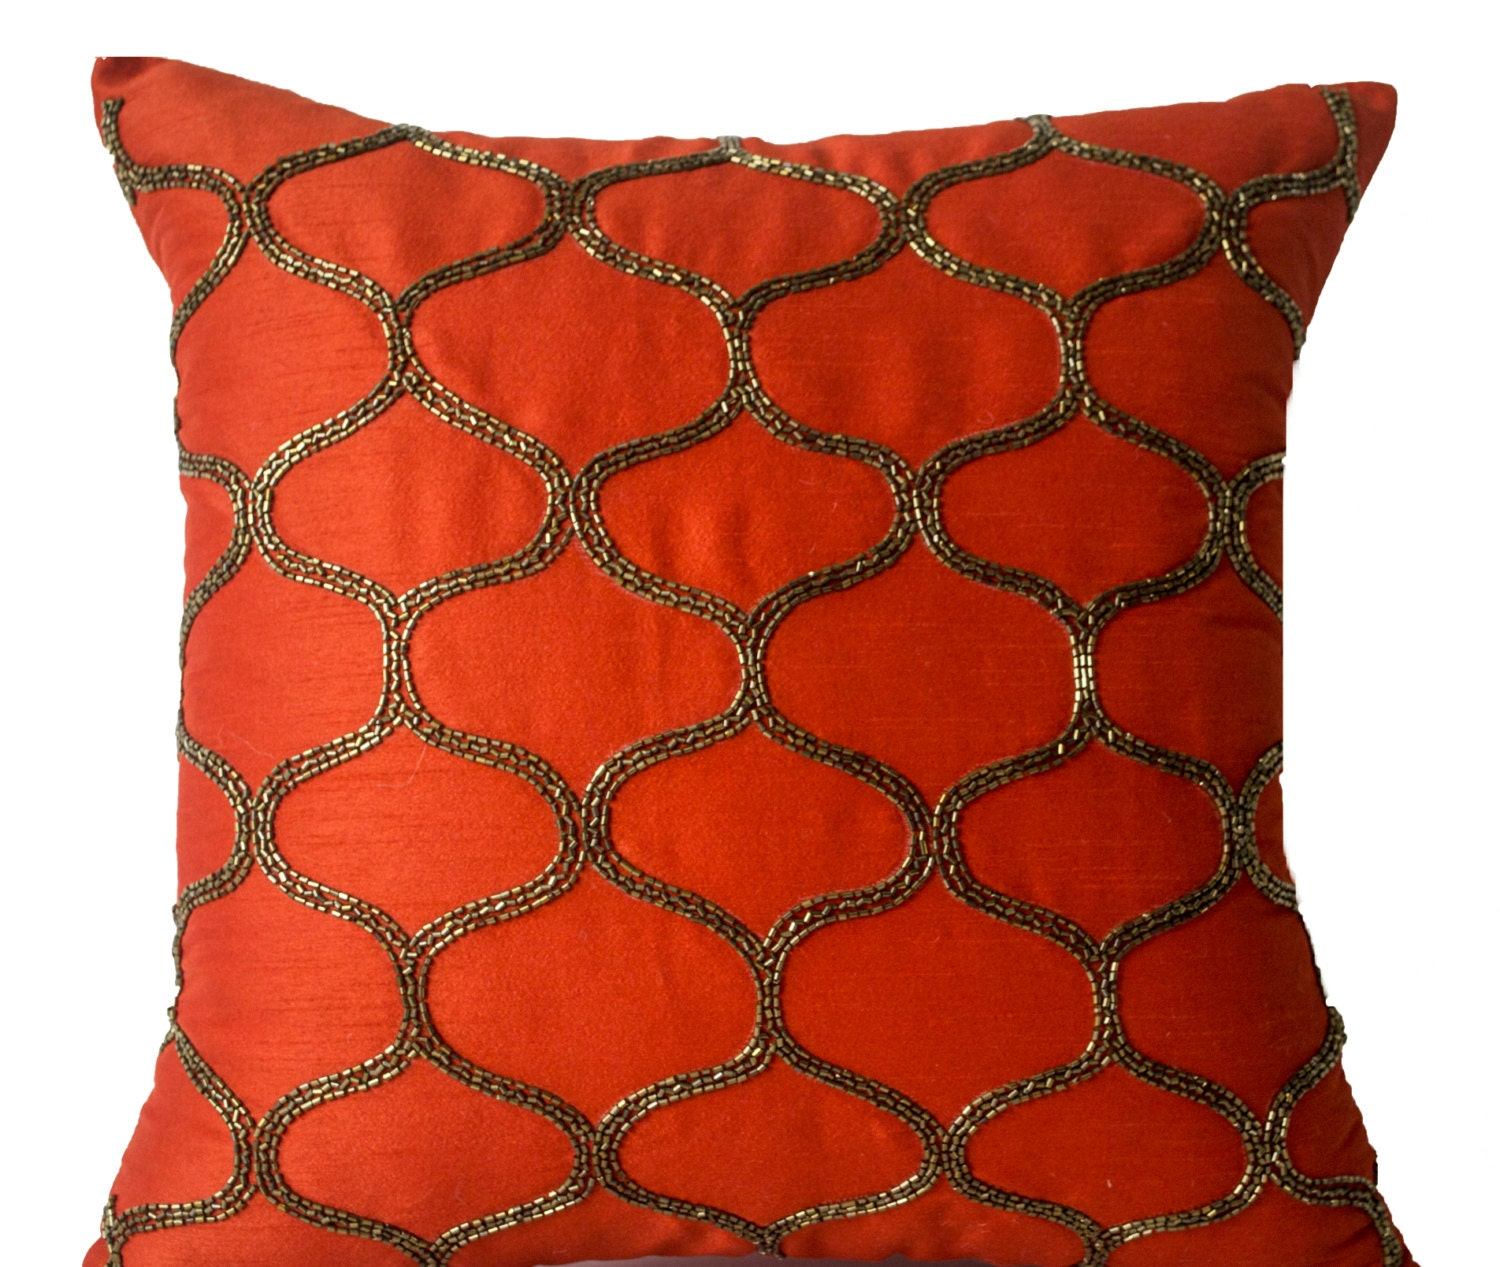 Throw Pillows With Orange : Orange Decorative Pillow Orange Pillow Orange Silk Pillow